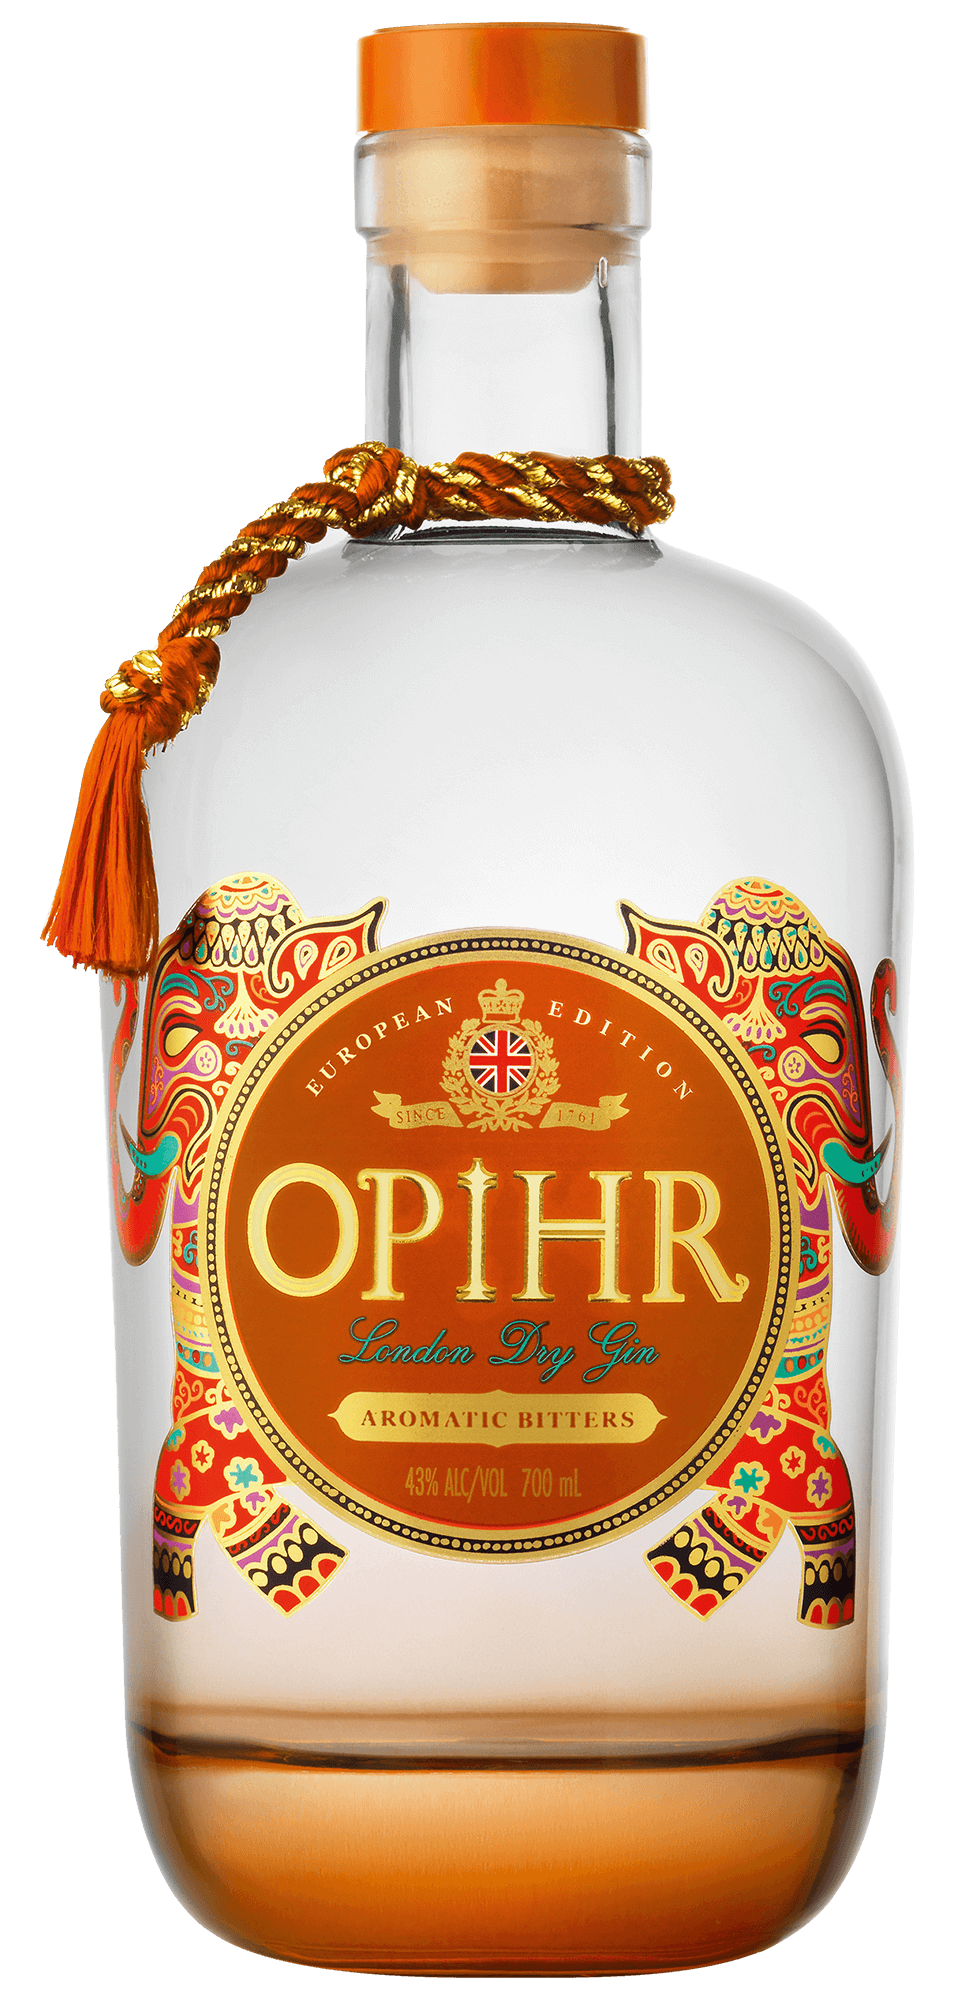 Opihr London Dry Gin European Edition